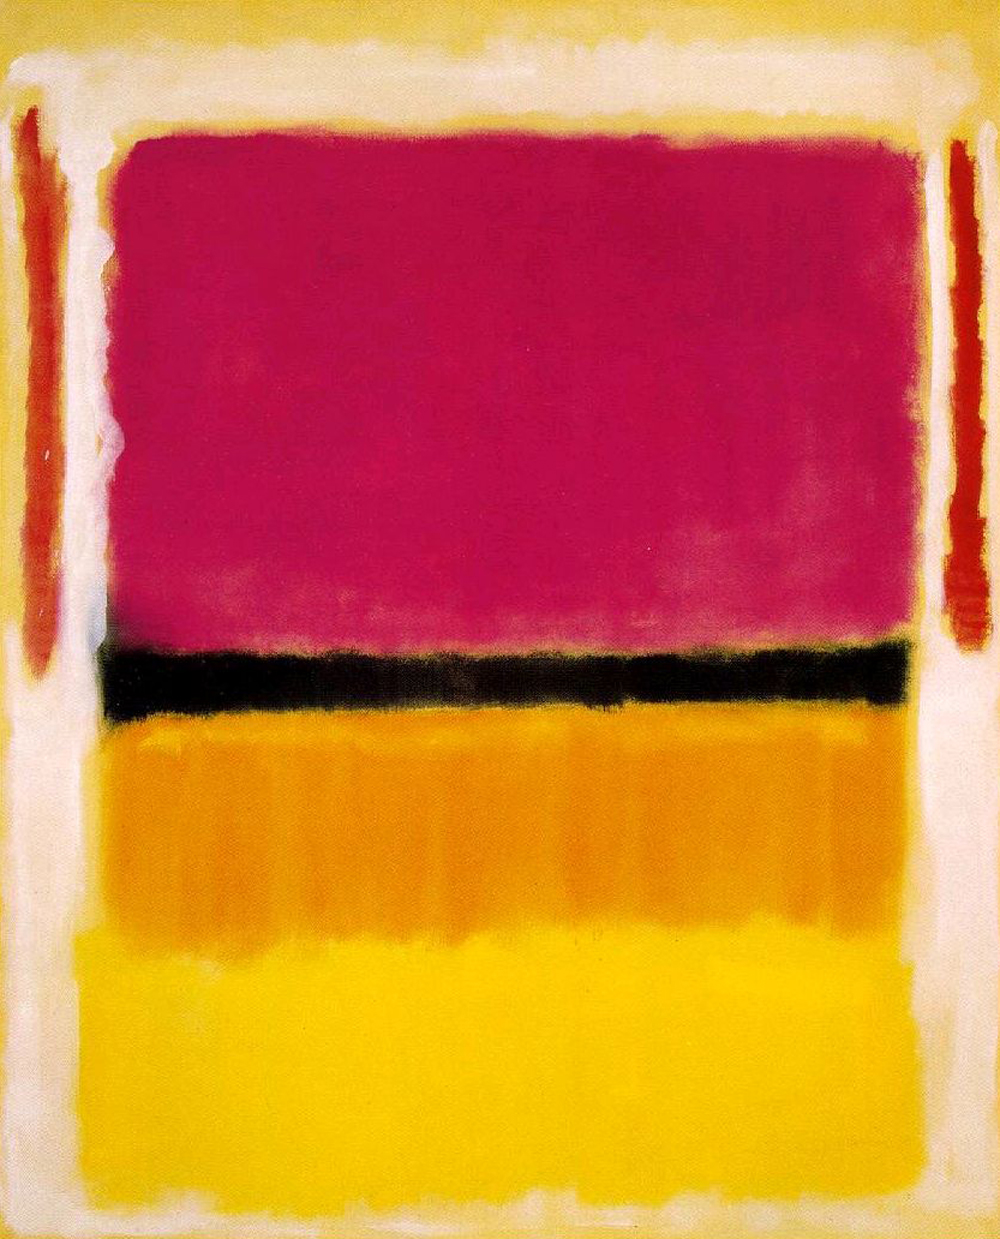 Mark Rothko, Untitled, 1949, courtesy The Guggenheim Museum, New York